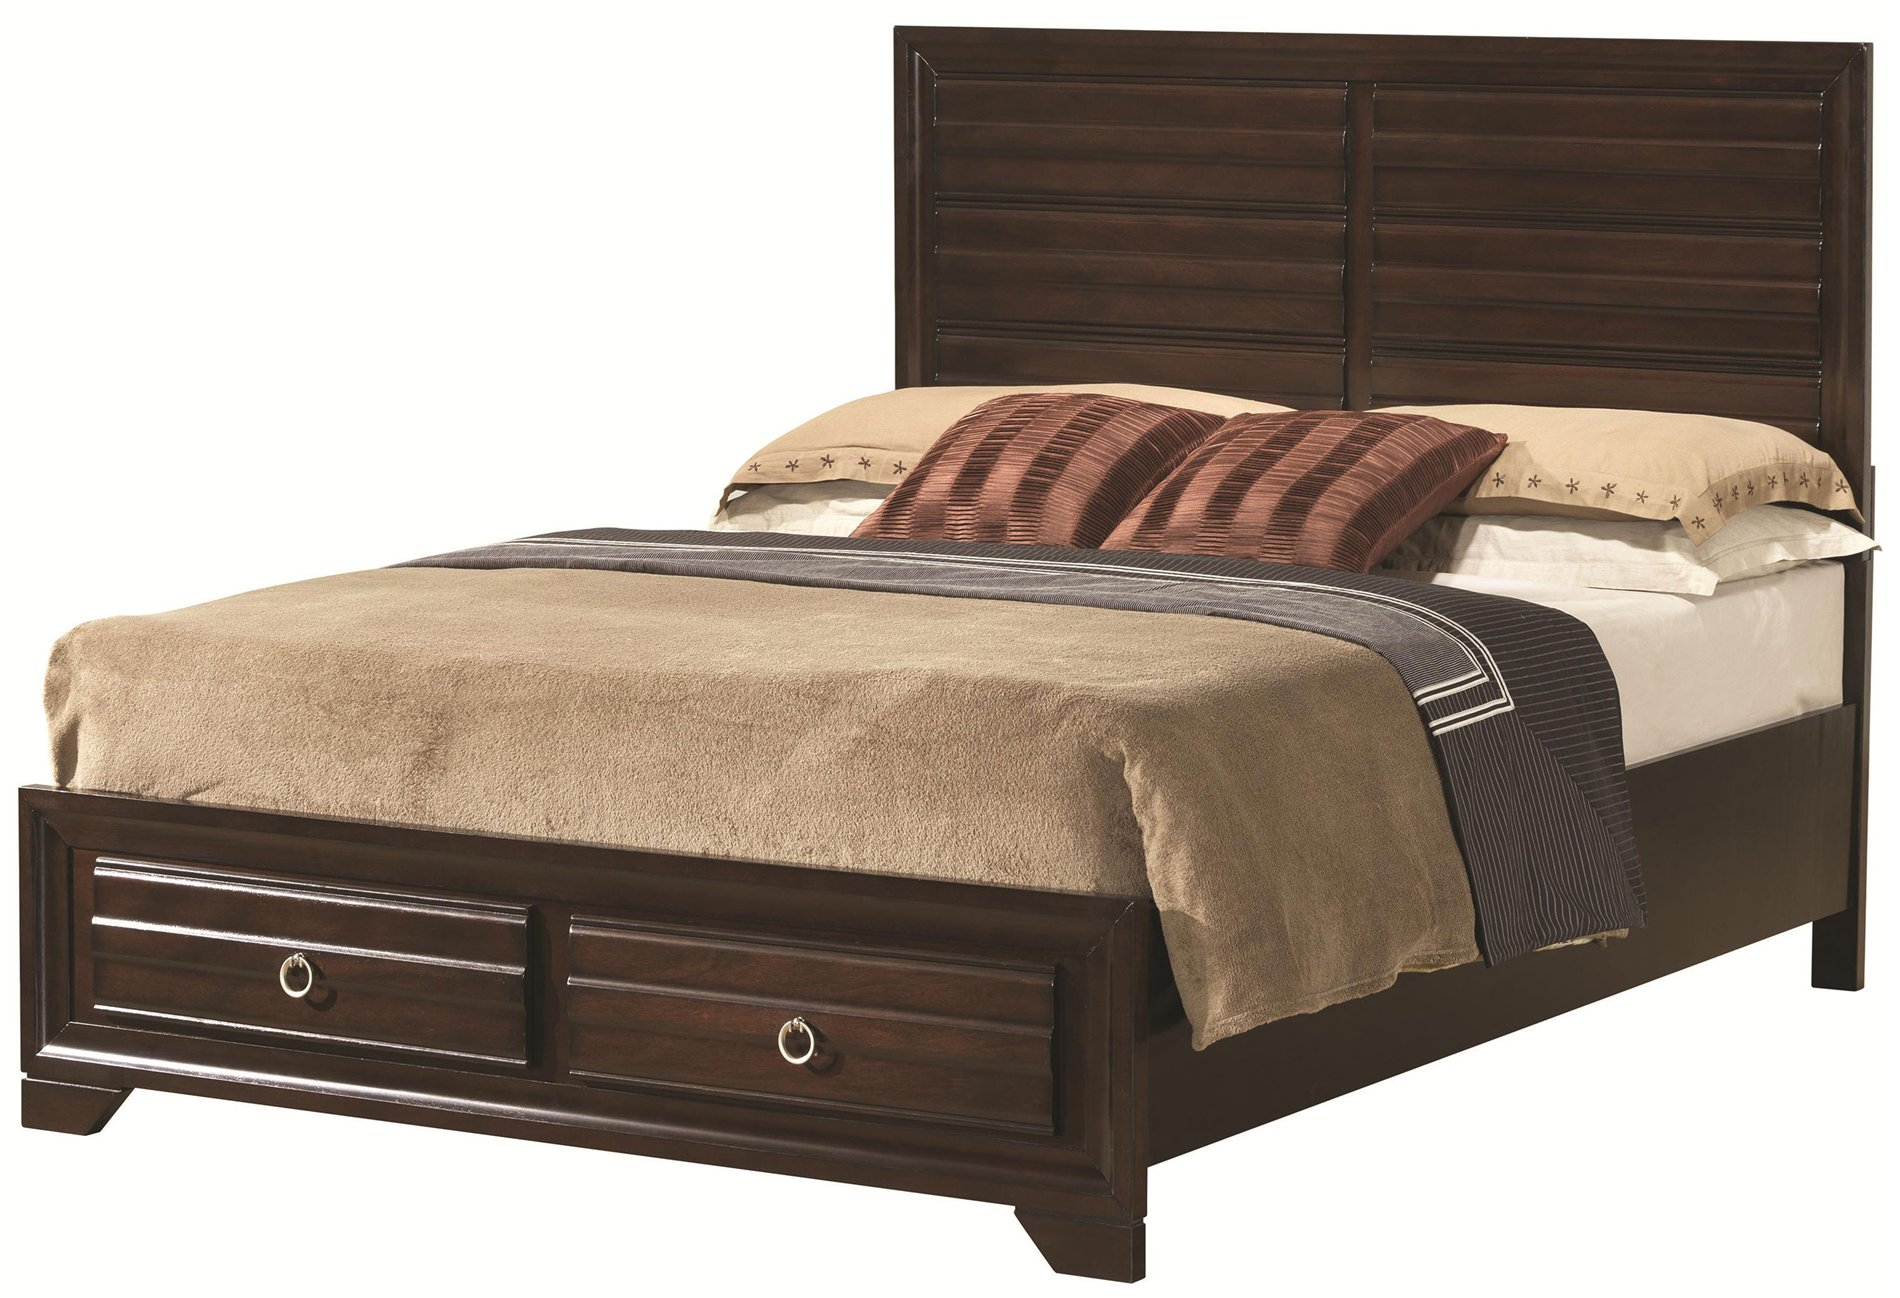 Coaster home 203471kw bryce 20347 california king bed with California king headboard